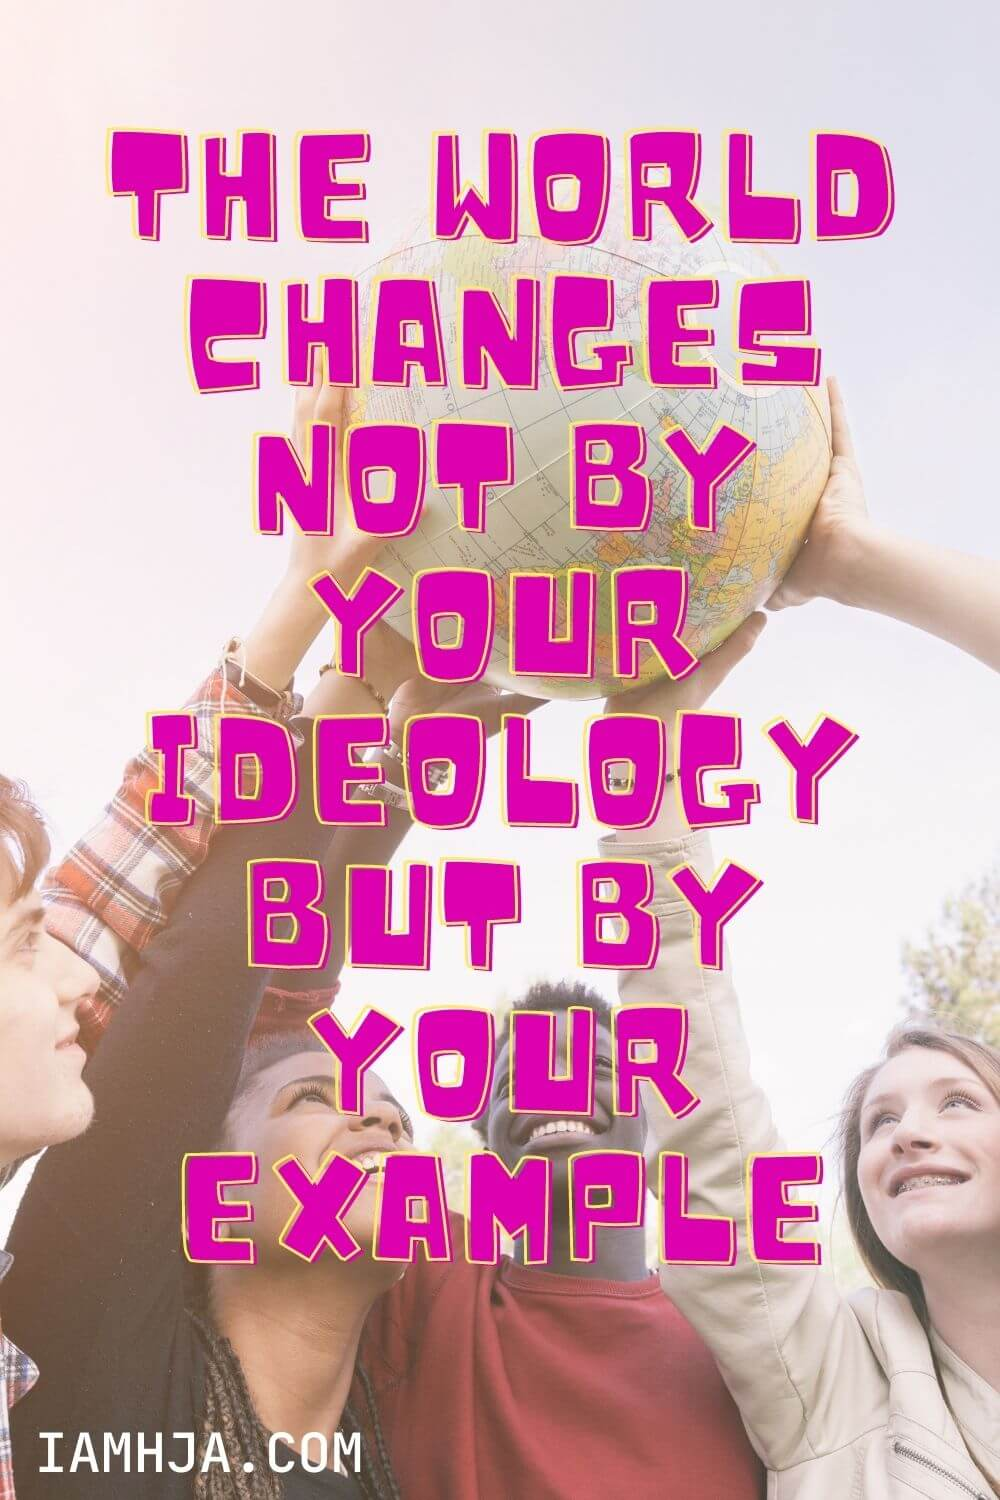 The world changes not by your ideology but by your example